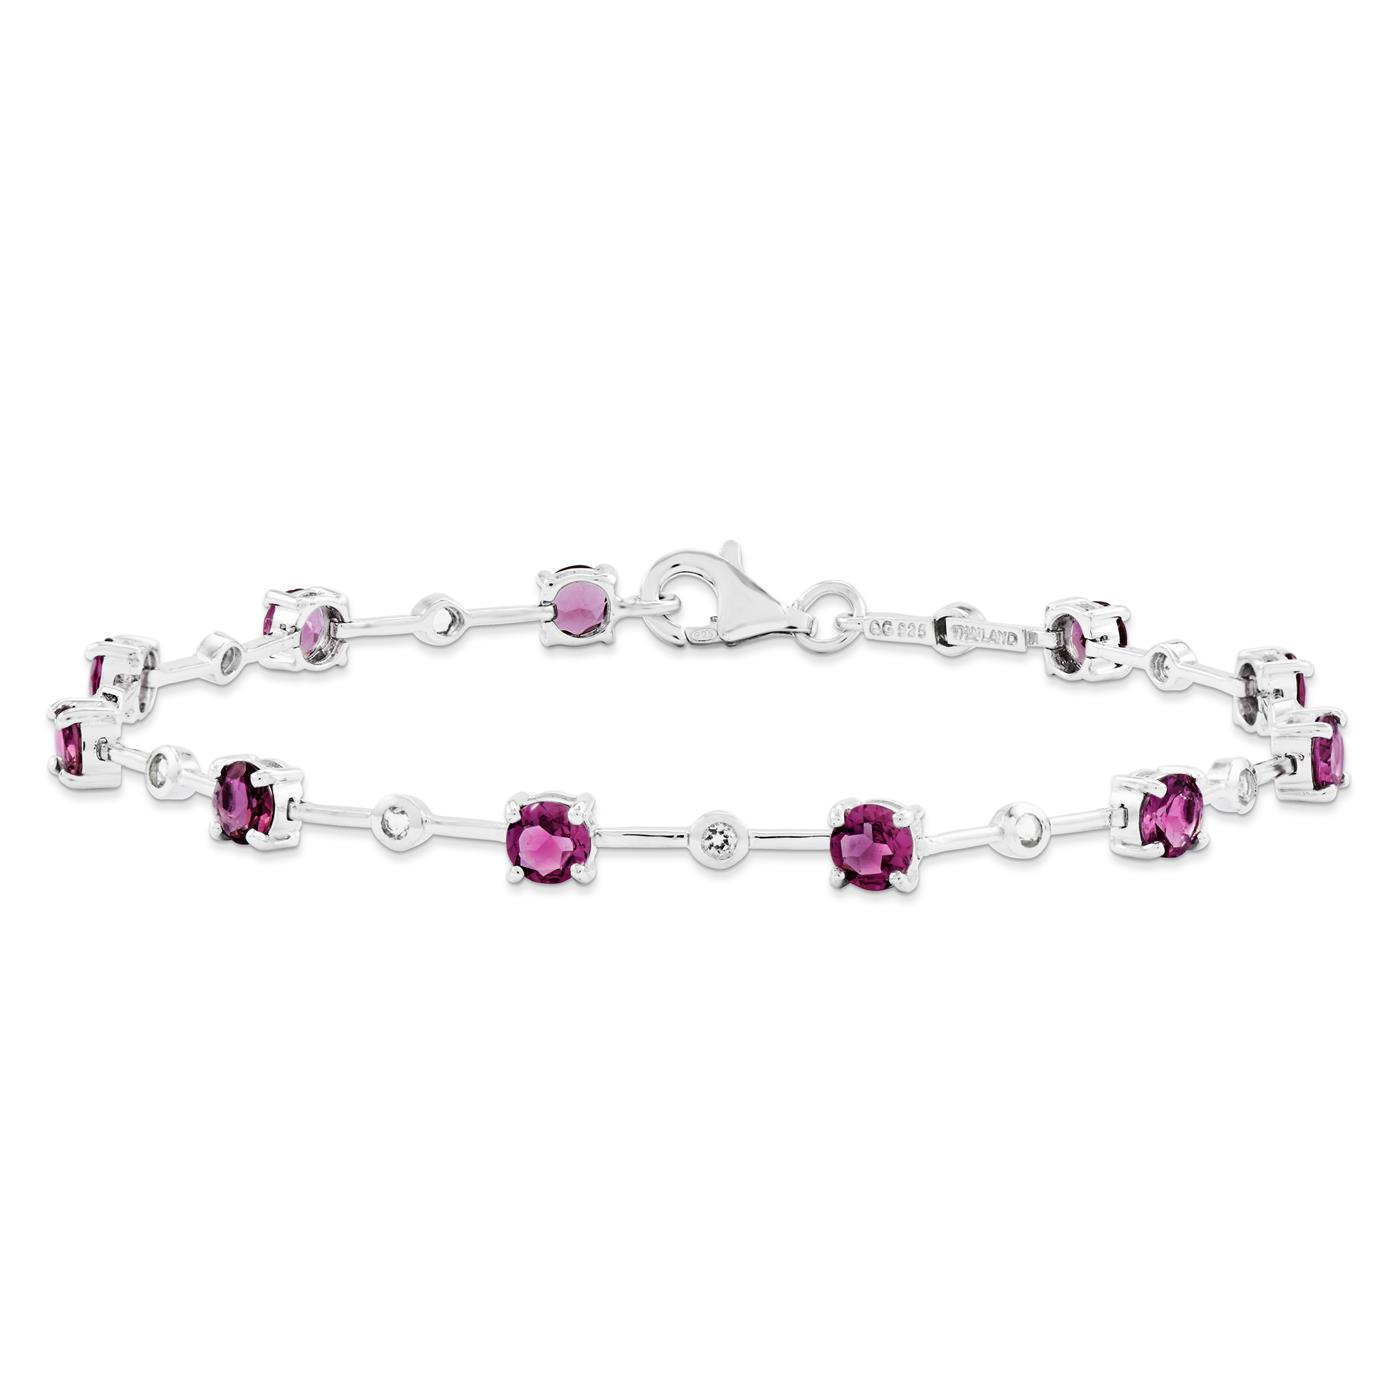 "925 Sterling Silver 4mm Pink Tourmaline Gemstone Bracelet 7"" by"